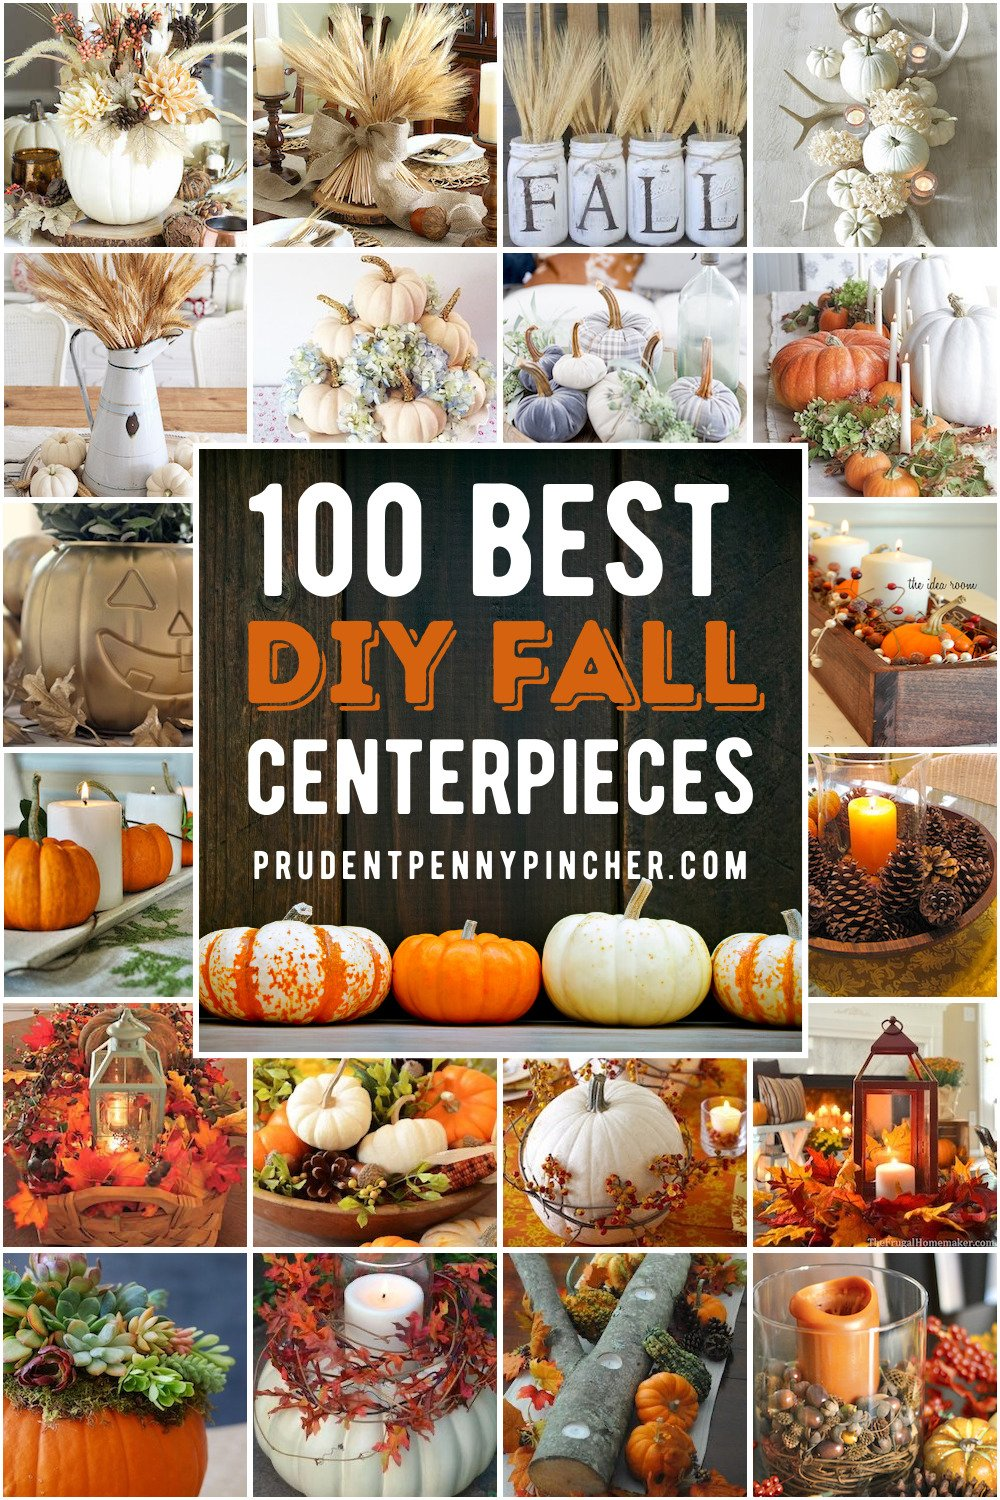 20 Best DIY Fall Centerpieces   Prudent Penny Pincher